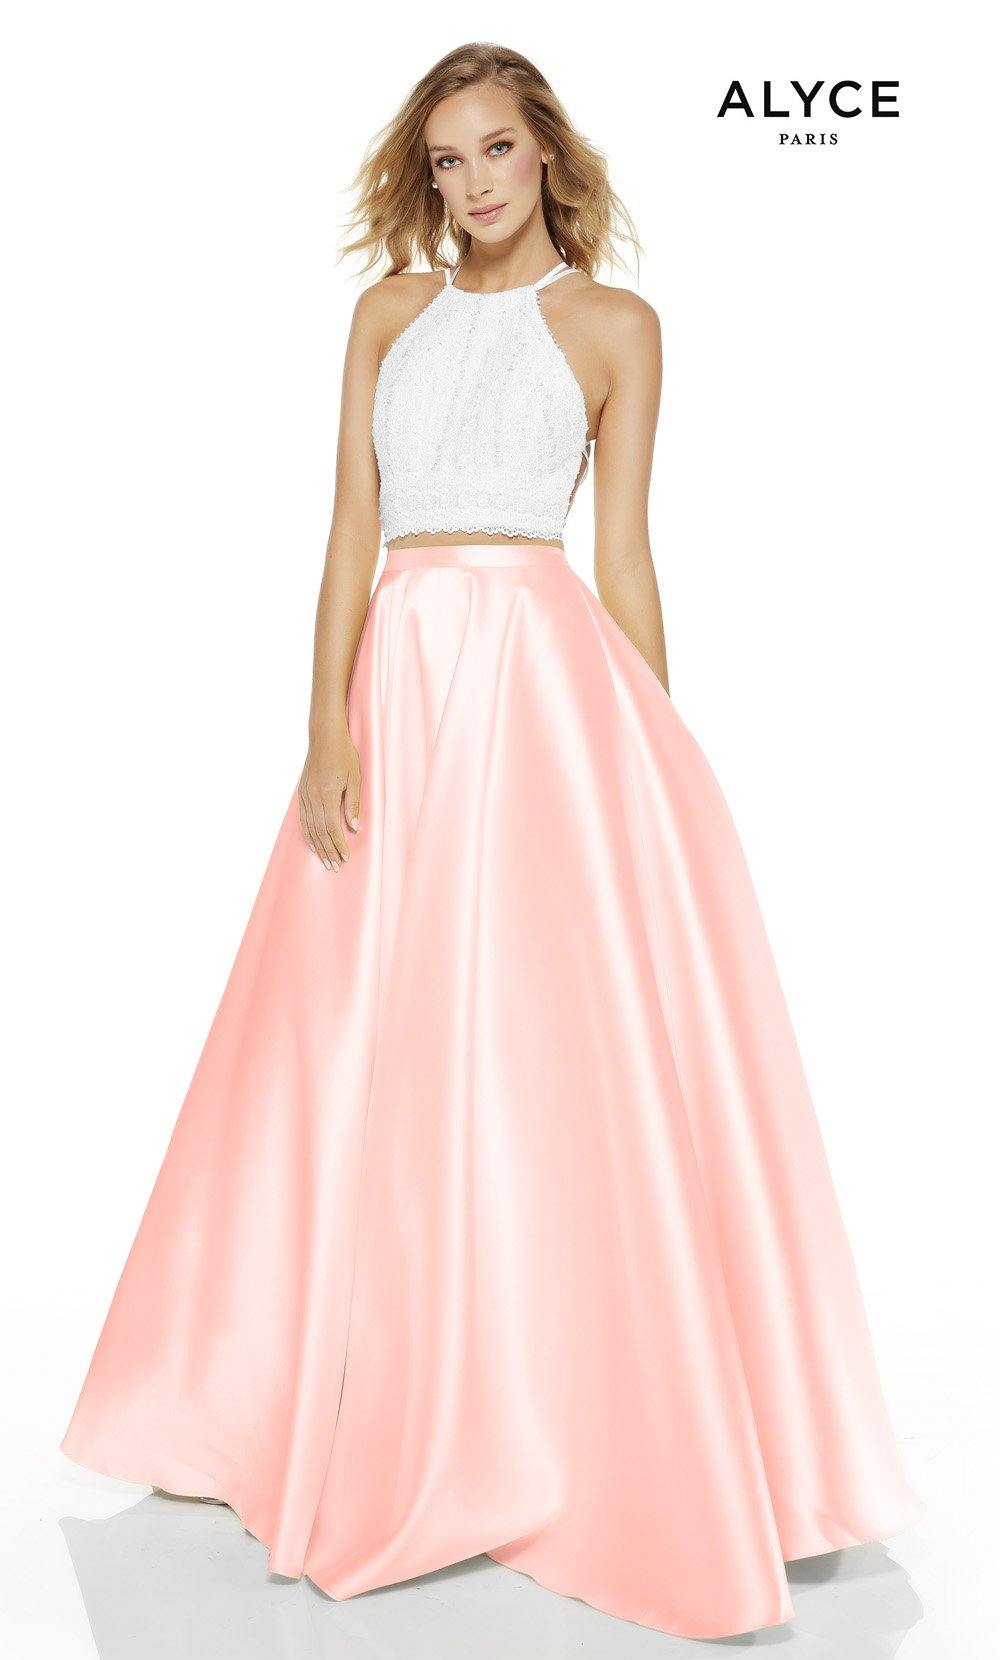 Diamond White-French Pink two piece prom dress with a halter neckline